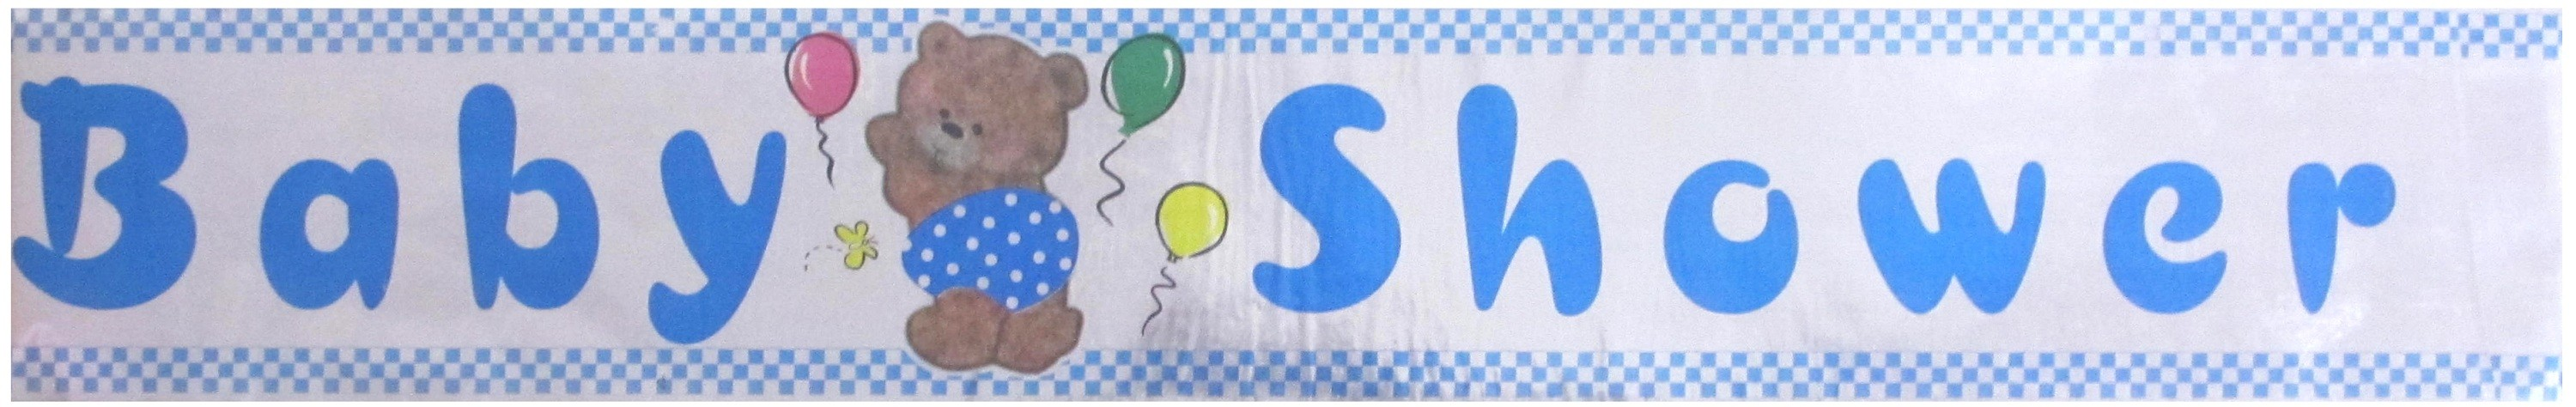 Baby Shower Party Banner - Blue